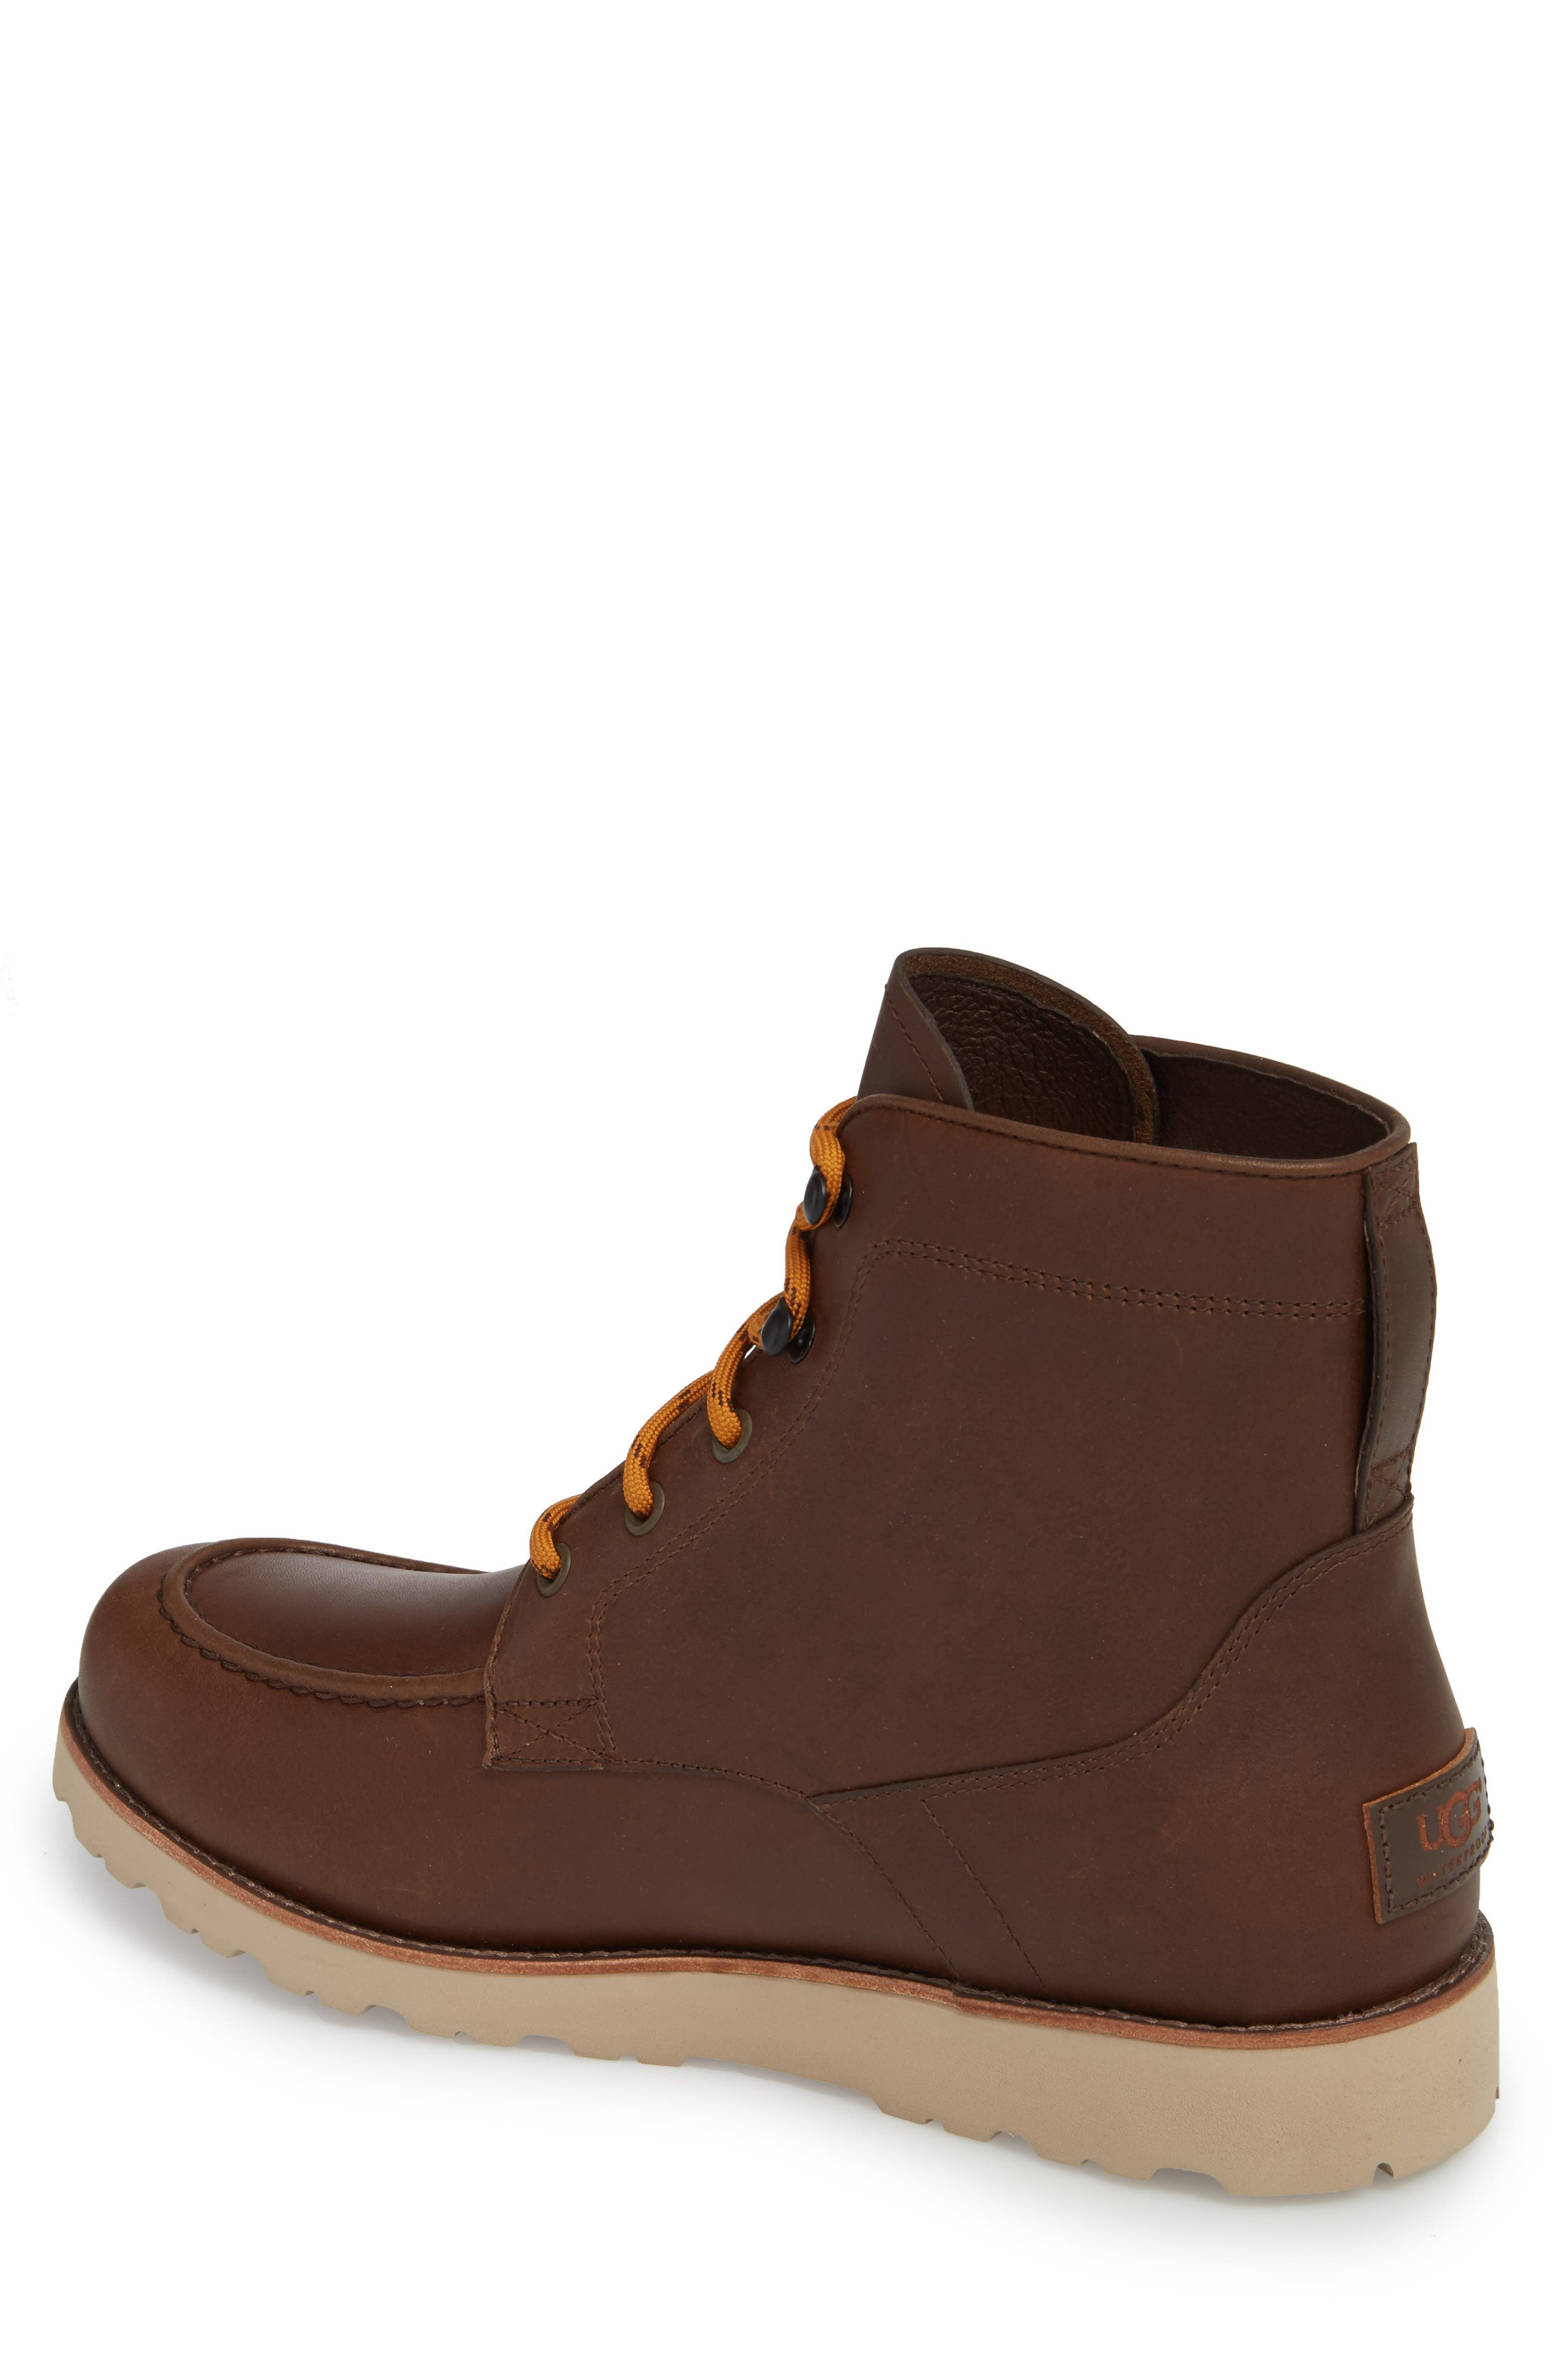 Agnar Moc Toe Boot,                             Alternate thumbnail 2, color,                             Grizzly